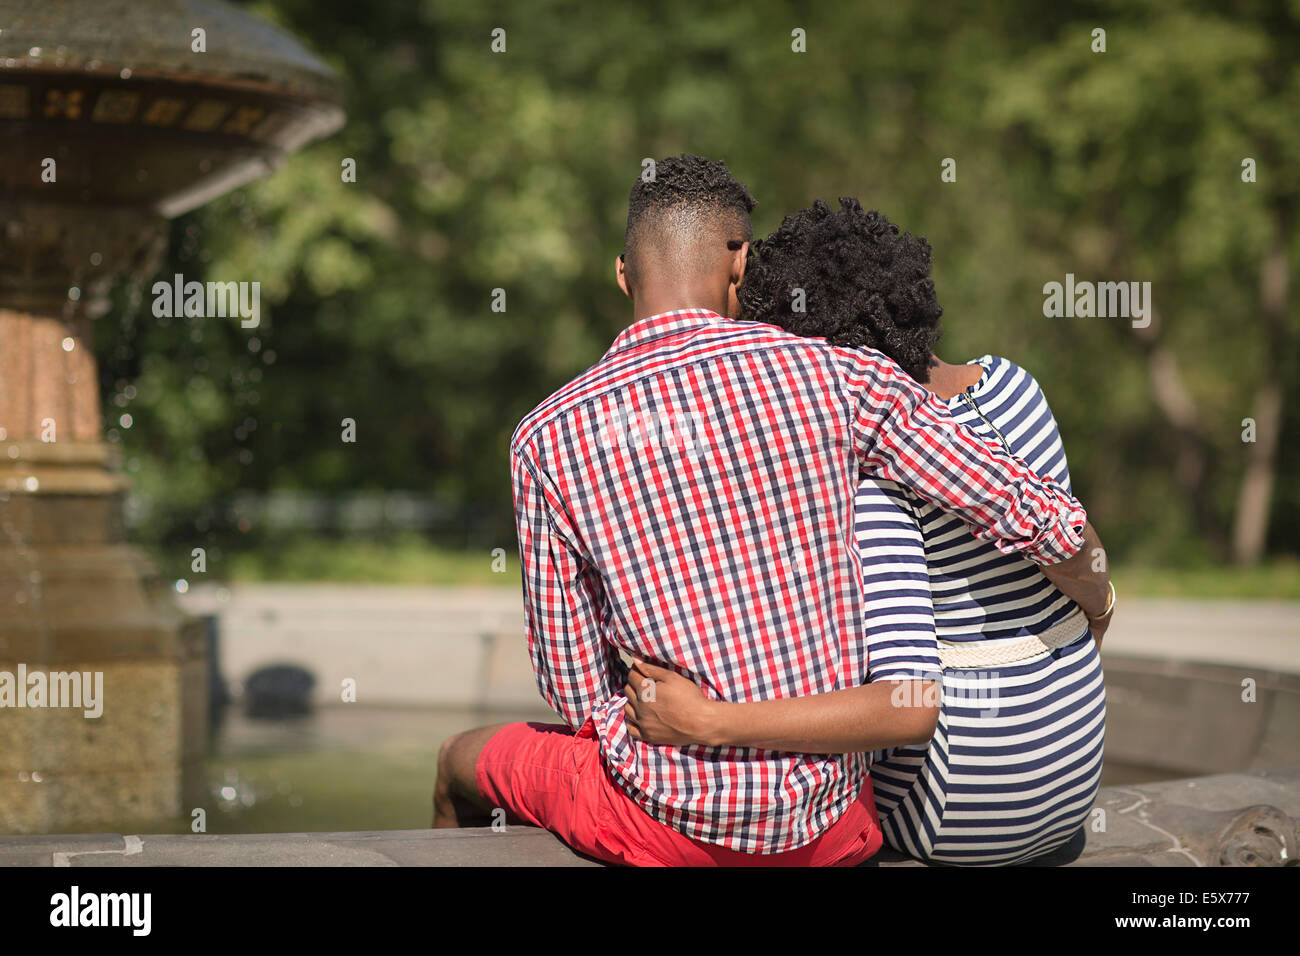 Rear view of young couple, Bethesda fountain, Central Park, New York City, USA - Stock Image